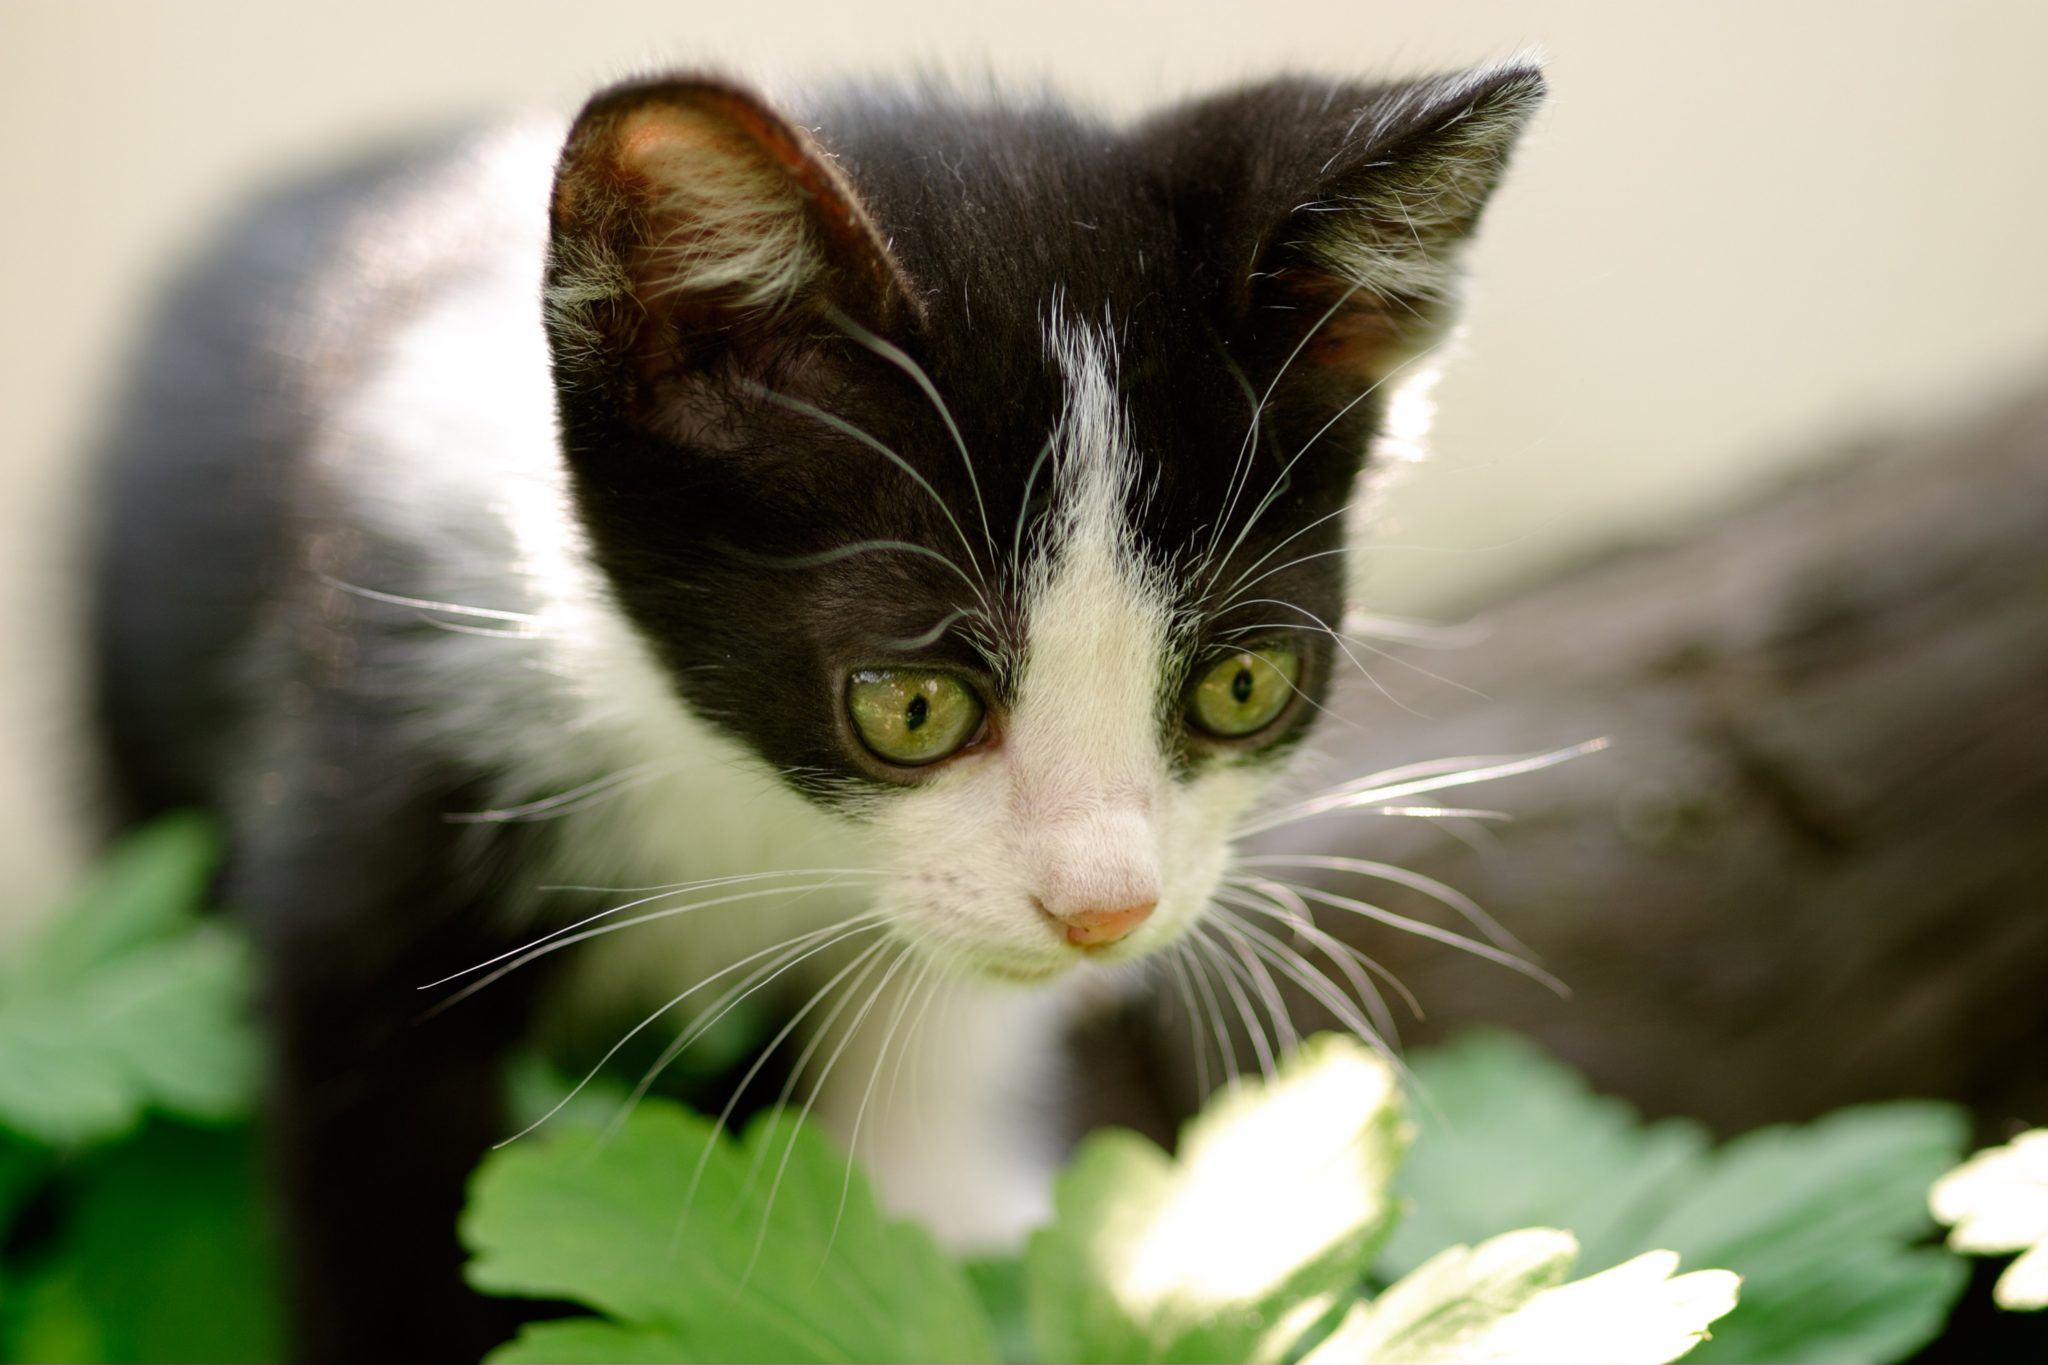 What To Do If You Find A Stray Cat Or Lost Kitten In